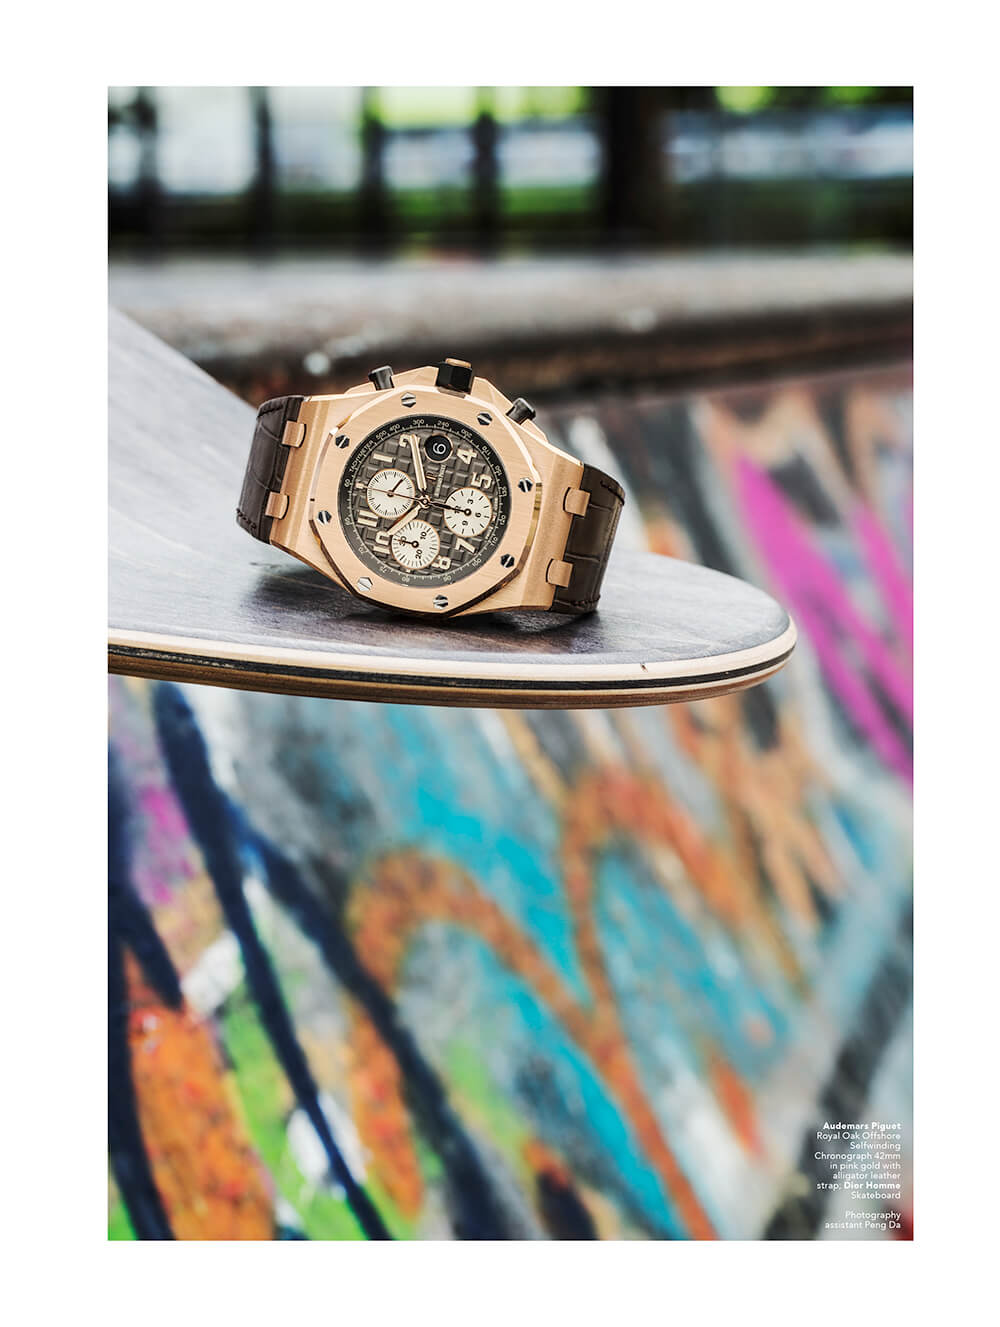 Audemars Piguet Royal Oak Offshore Selfwinding Chronograph 42mm in pink gold with alligator leather strap; Dior Homme Skateboard